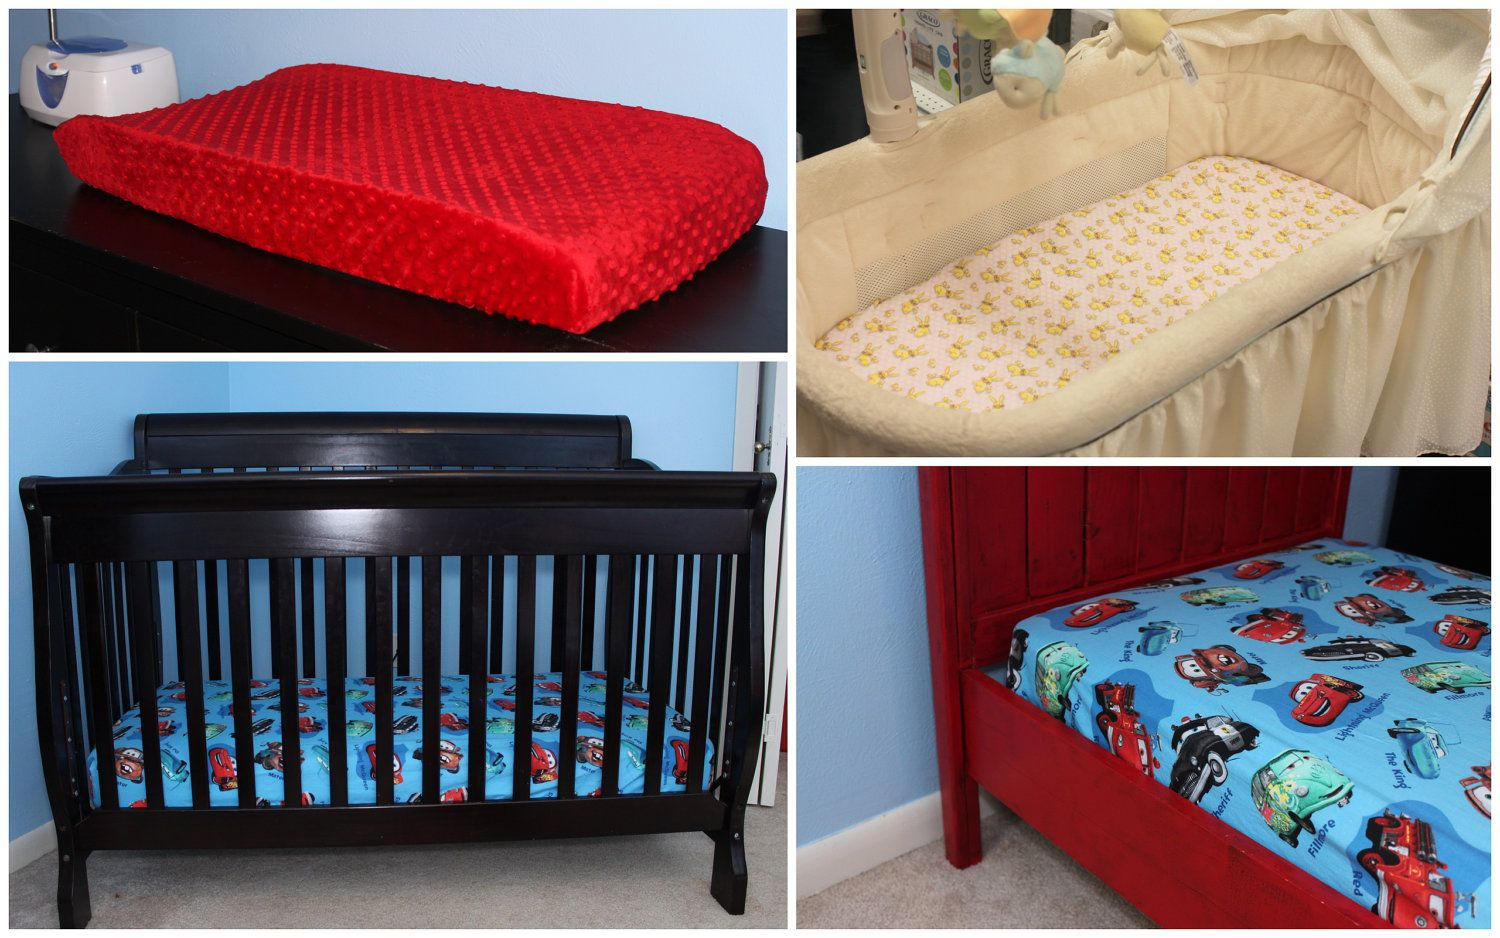 Sheet Pattern for crib, toddler bed, and changing